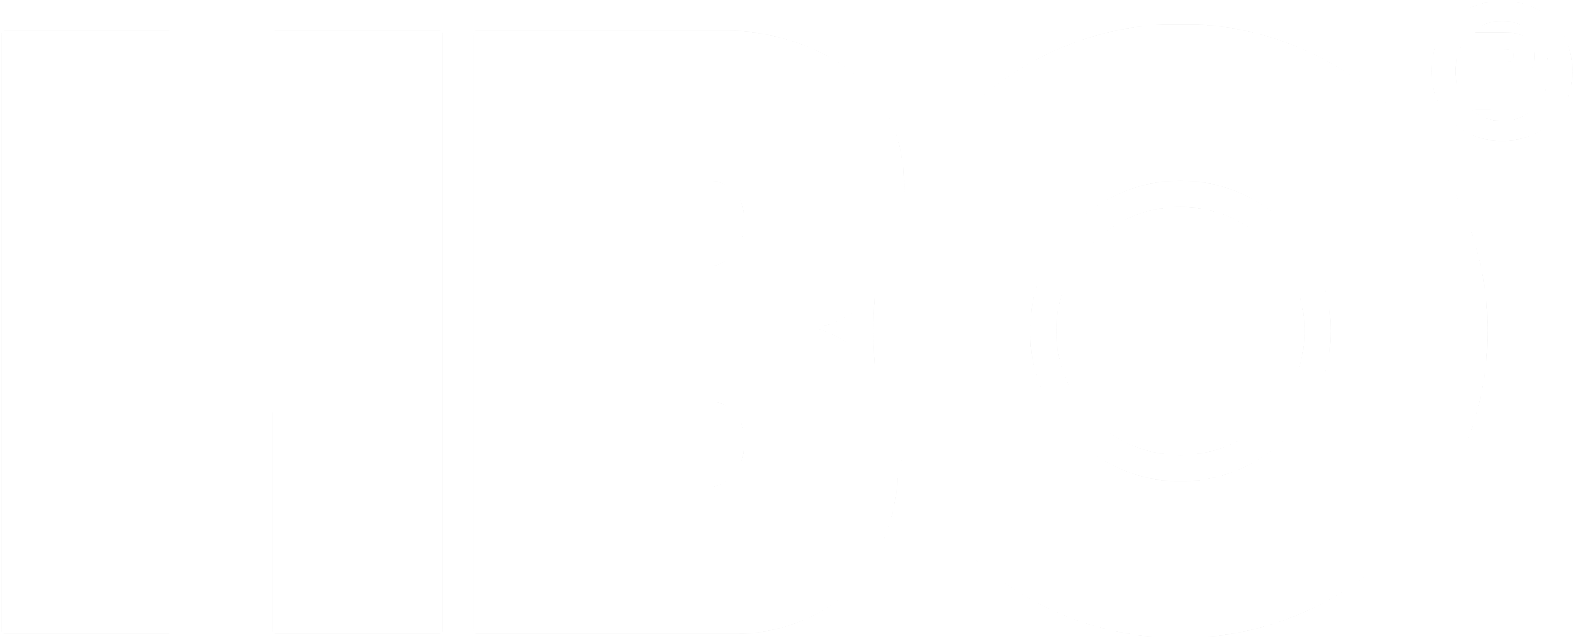 hbo logo white clipart 10 free Cliparts | Download images ...